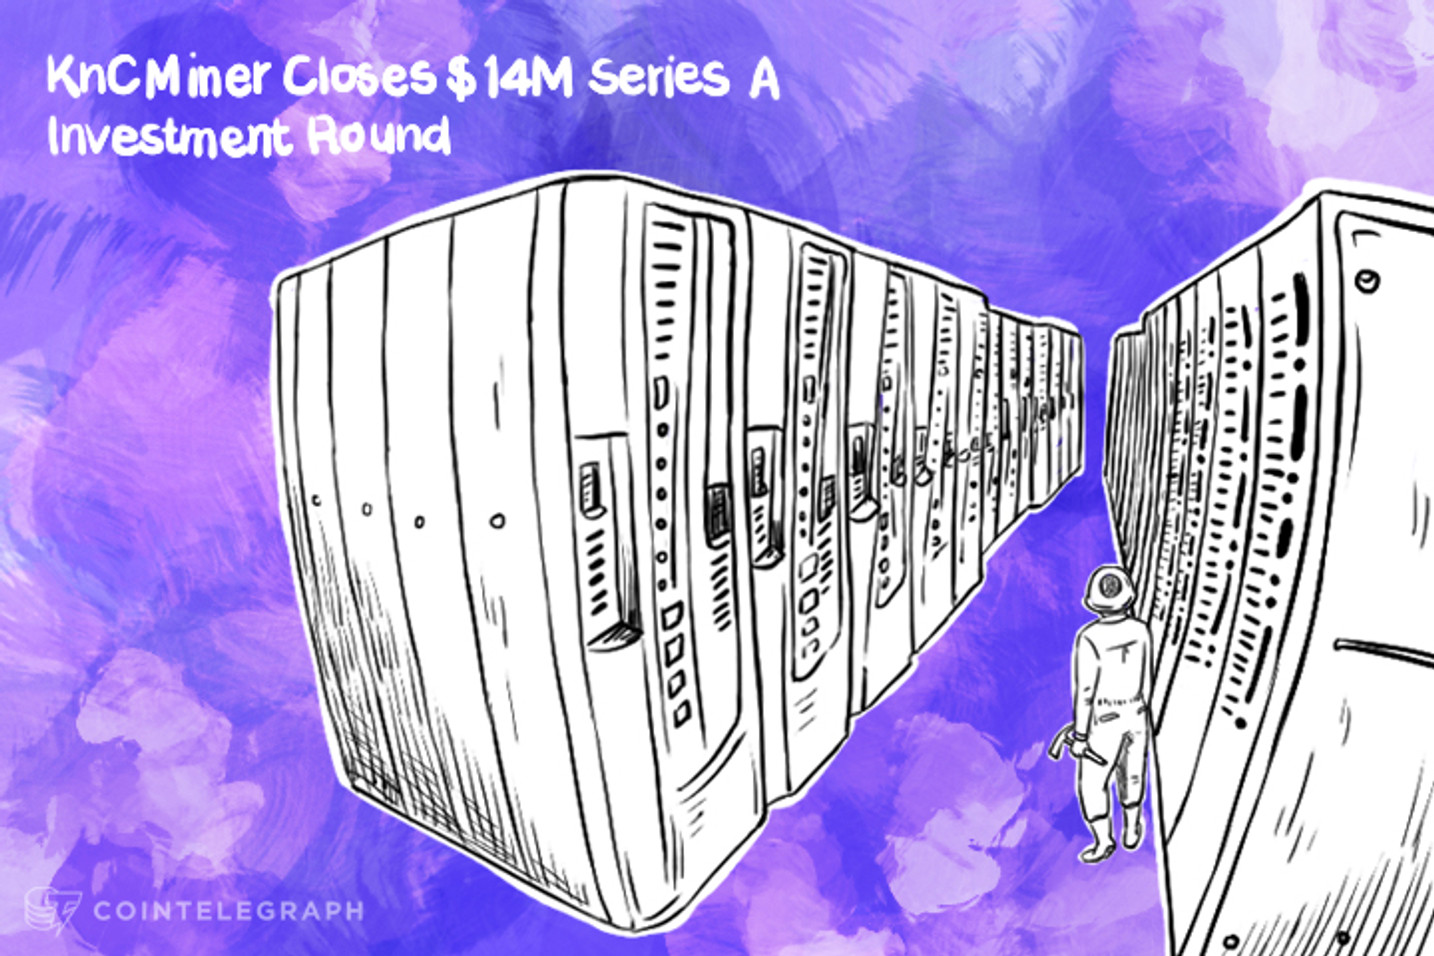 KnCMiner Closes $14M Series A Investment Round